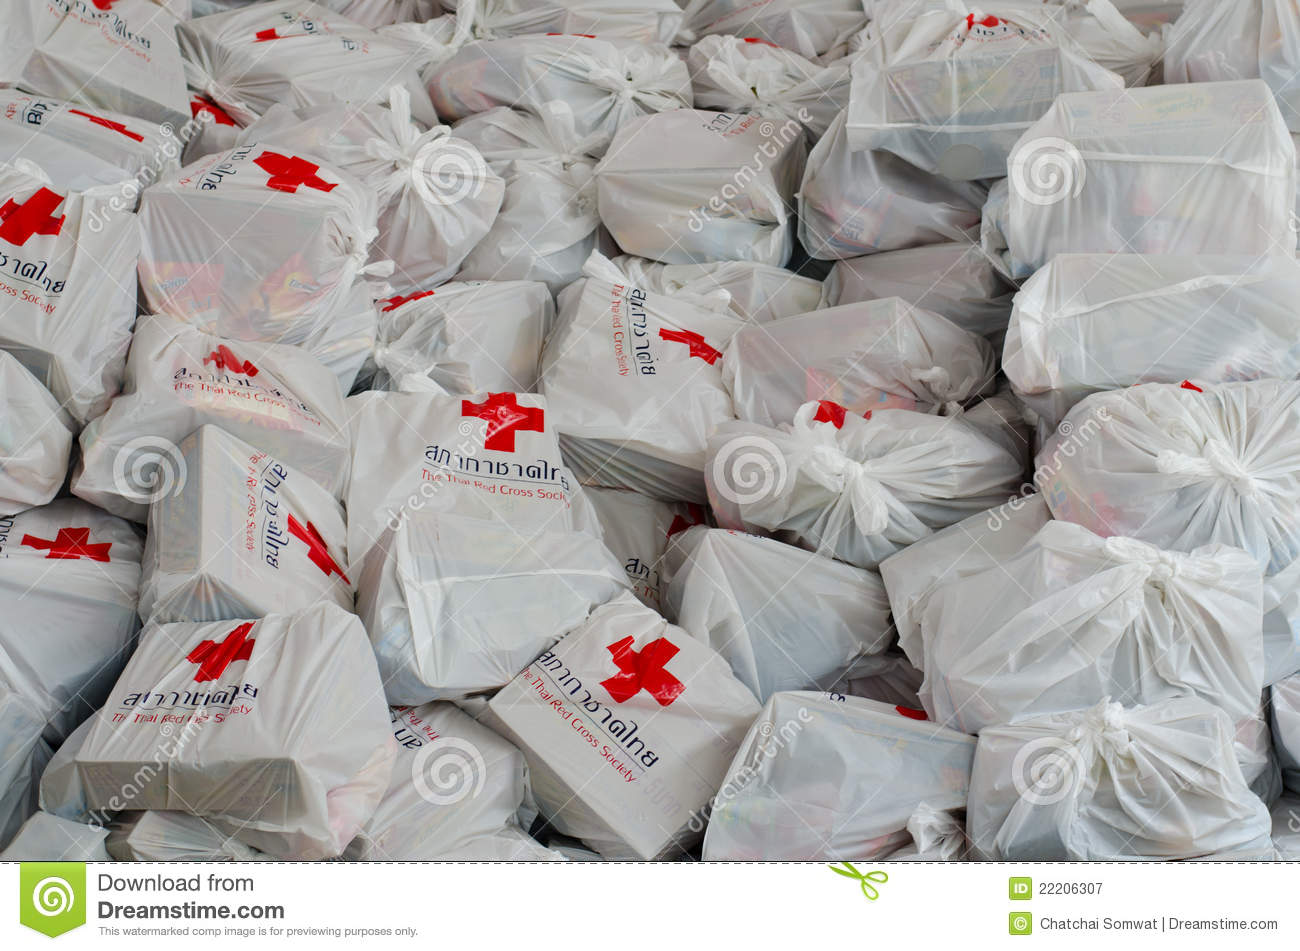 Bags of Red Cross